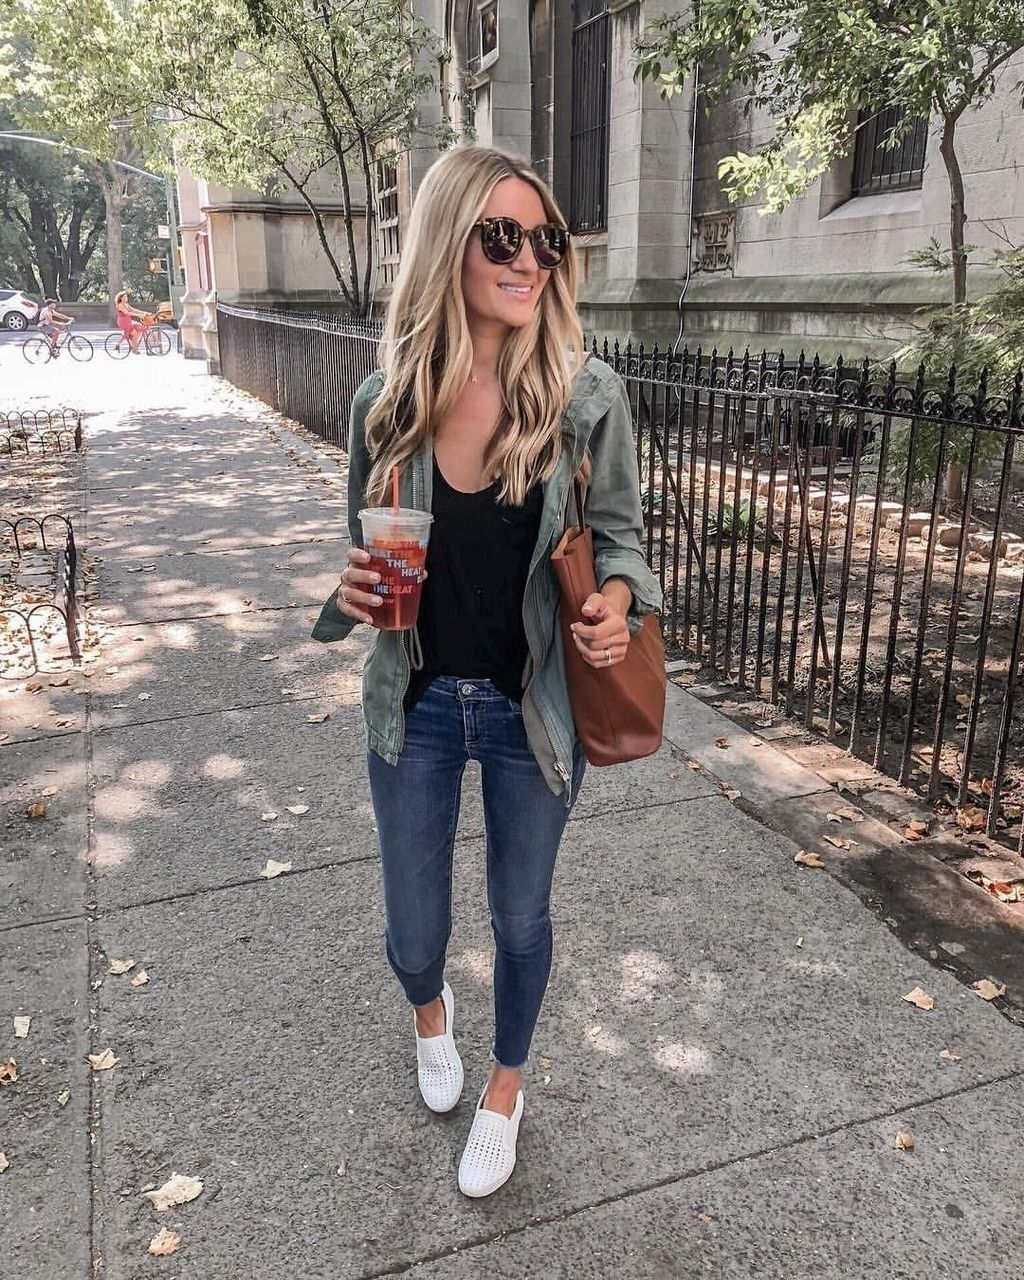 +28 Lovely Fall Outfits Ideas To Wear 2019  #maddyeuphoriaoutfits windsor, maddy euphoria outfits.Daily Fall Trends Ideas Wear. #maddyeuphoriaoutfits